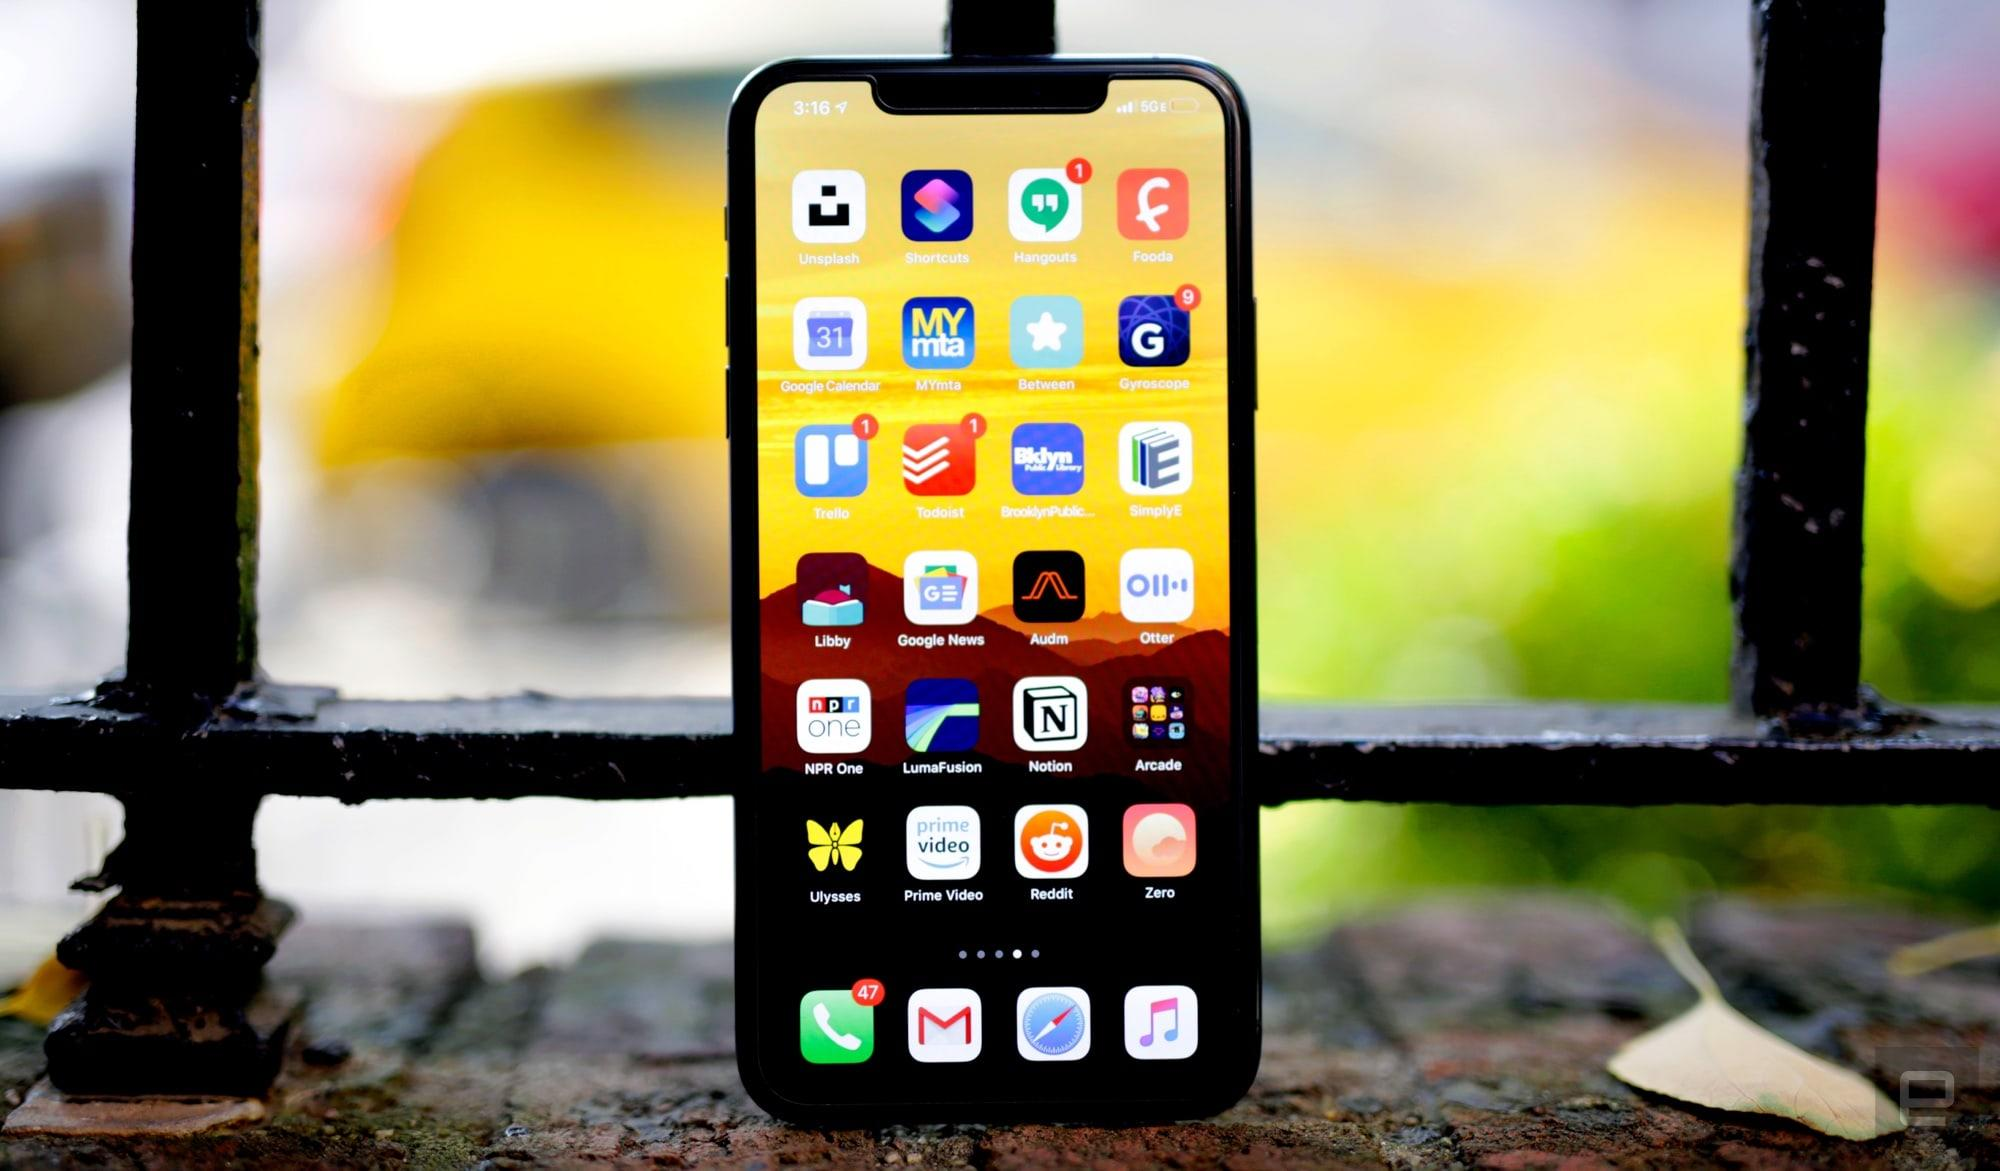 iOS 13.1 review: A necessary update after a rough start